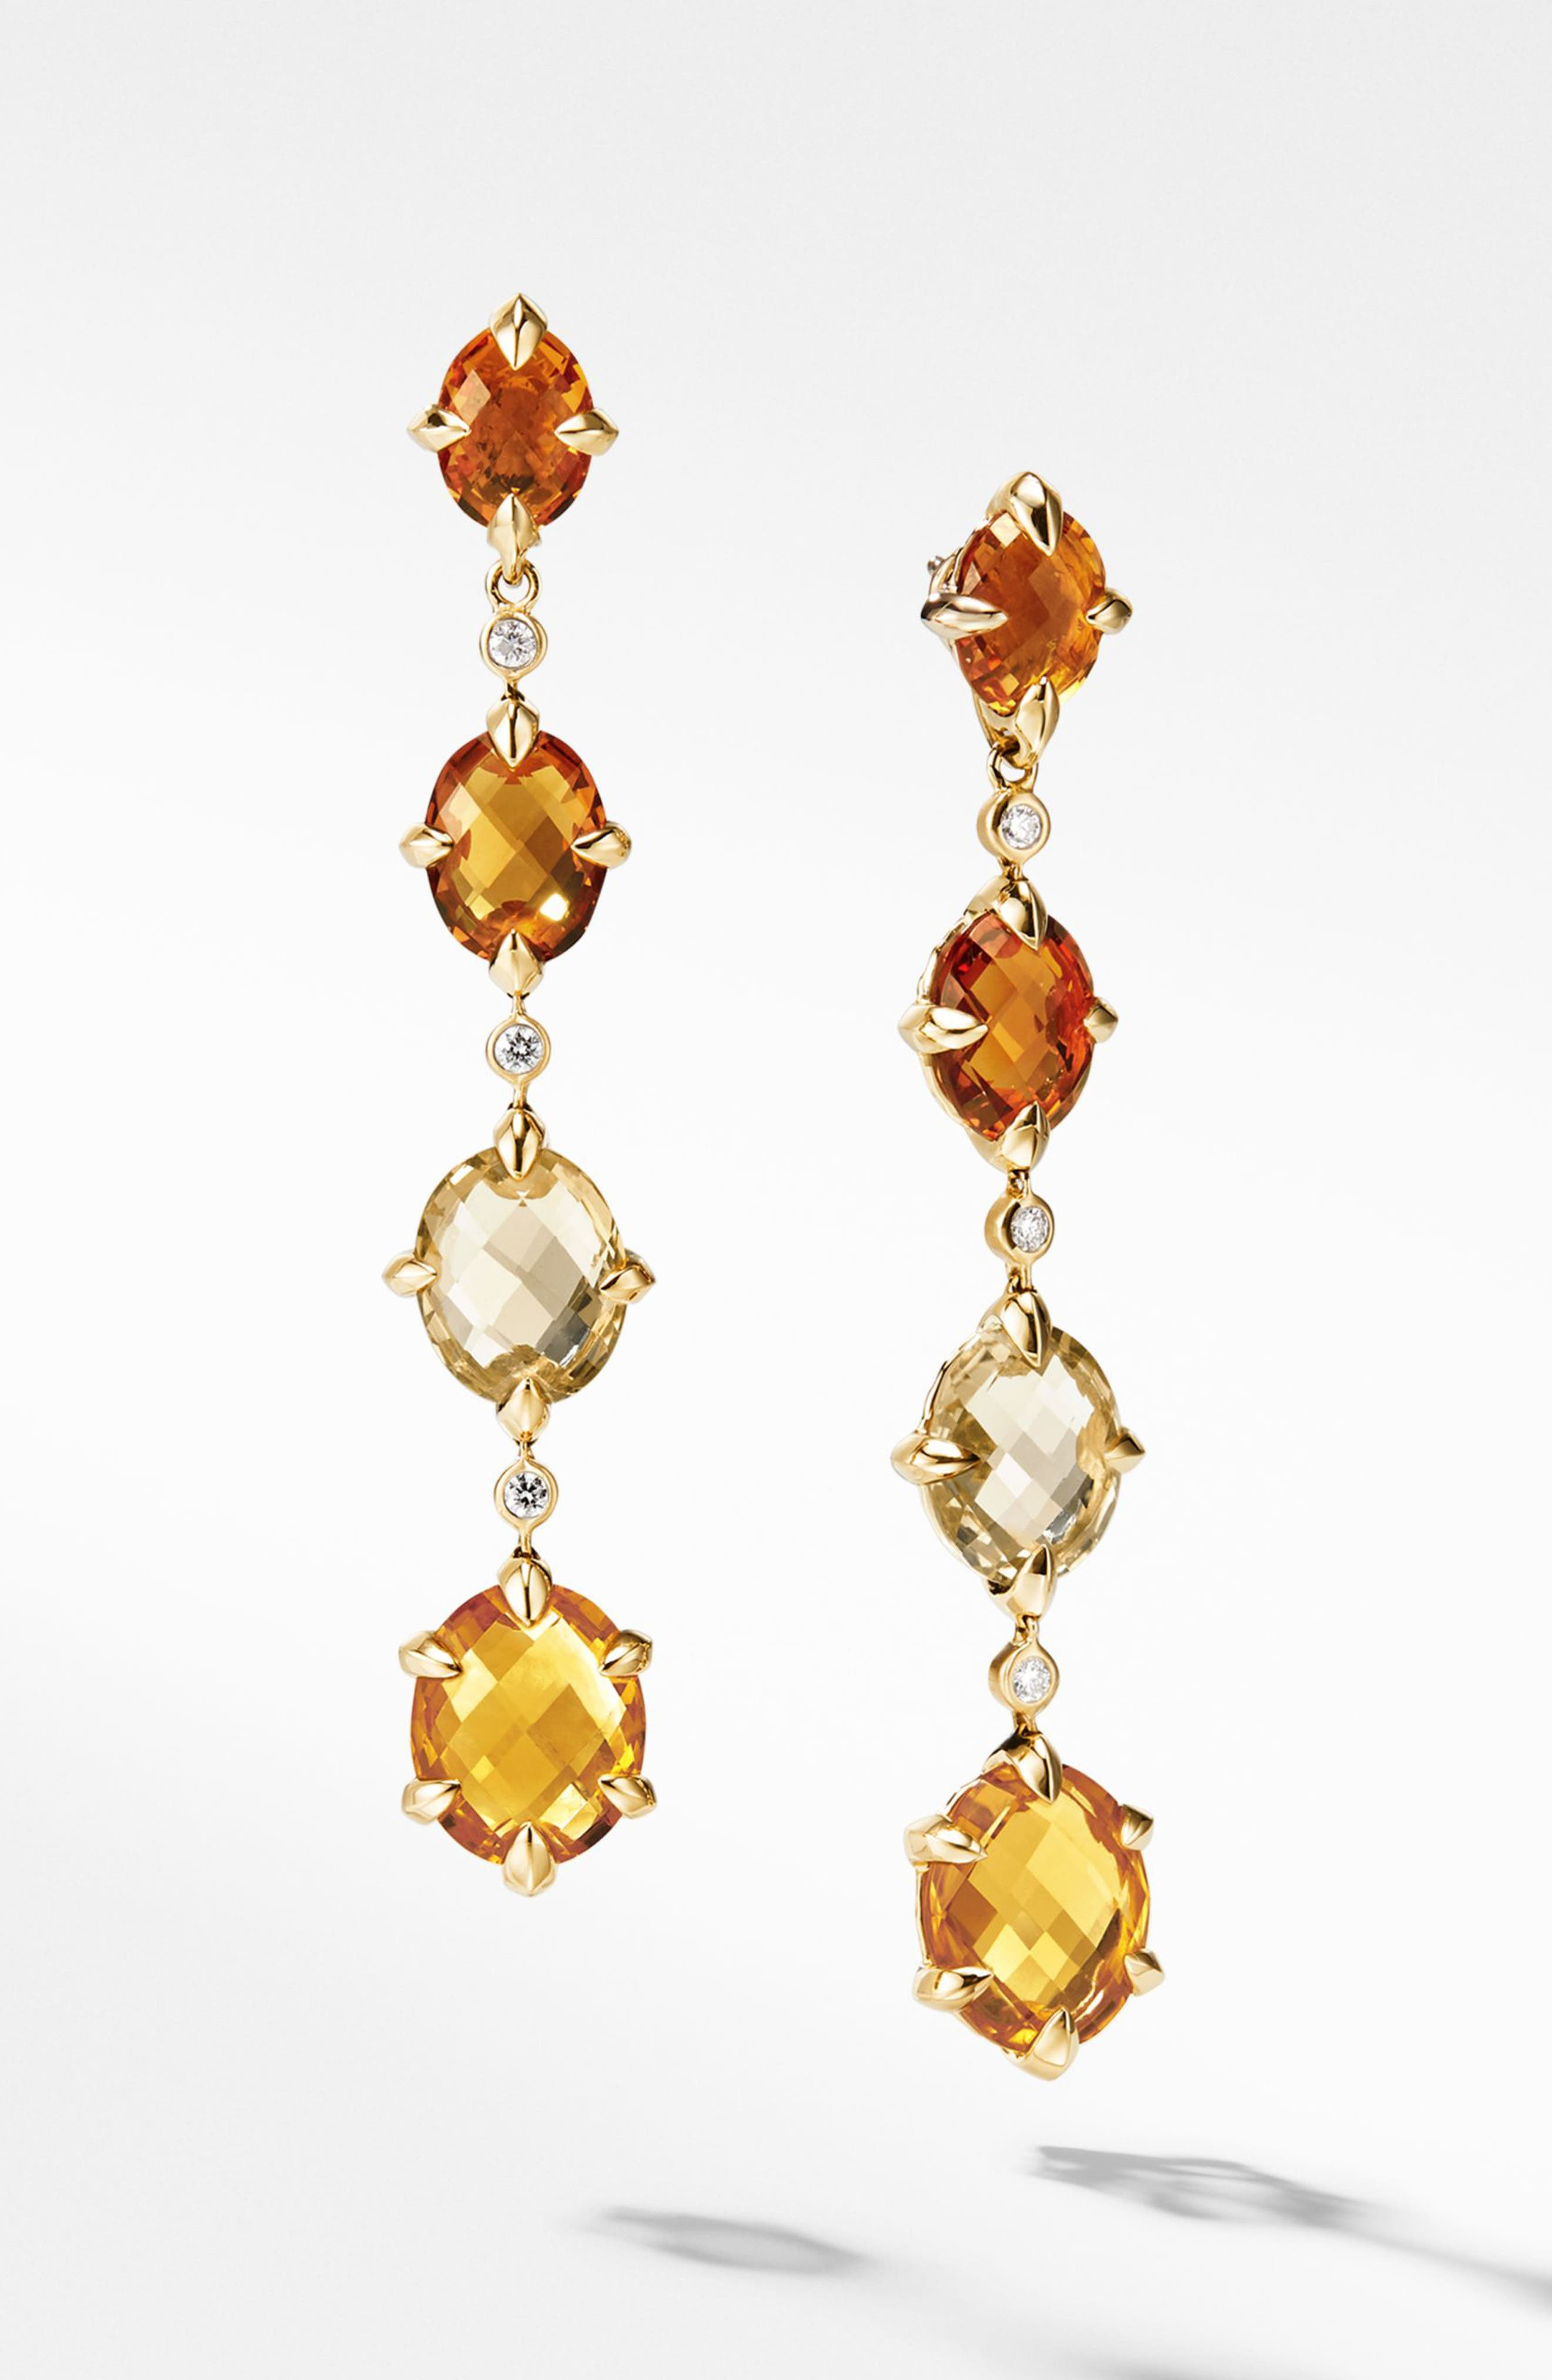 Chatelaine<sup>®</sup> 18k Gold Drop Earrings with Diamonds,                         Main,                         color, Gold/ Diamond/ Citrine